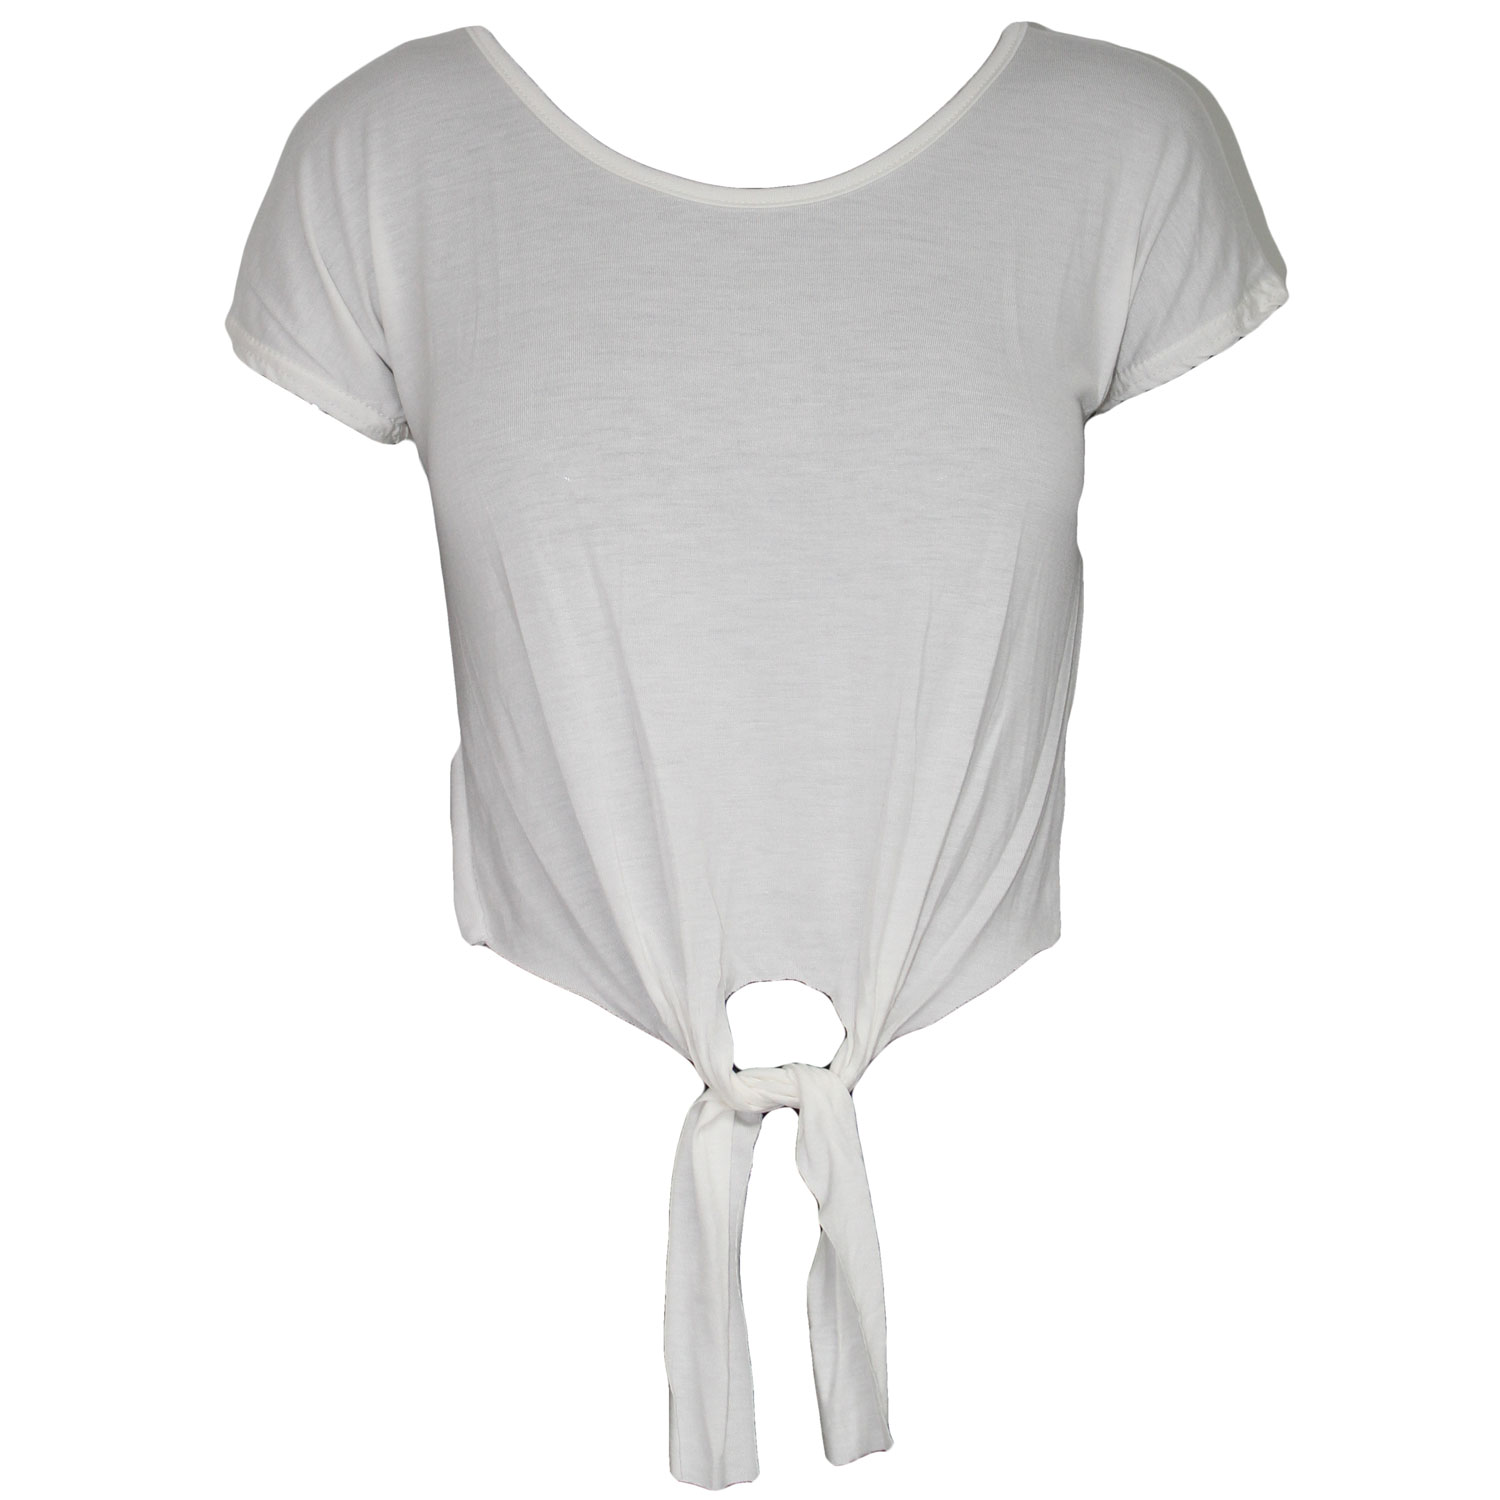 NEW-WOMENS-LADIES-TIE-FRONT-BLOUSE-JERSEY-CROPPED-TOP-TEE-SHIRT-SIZE-8-10-12-14